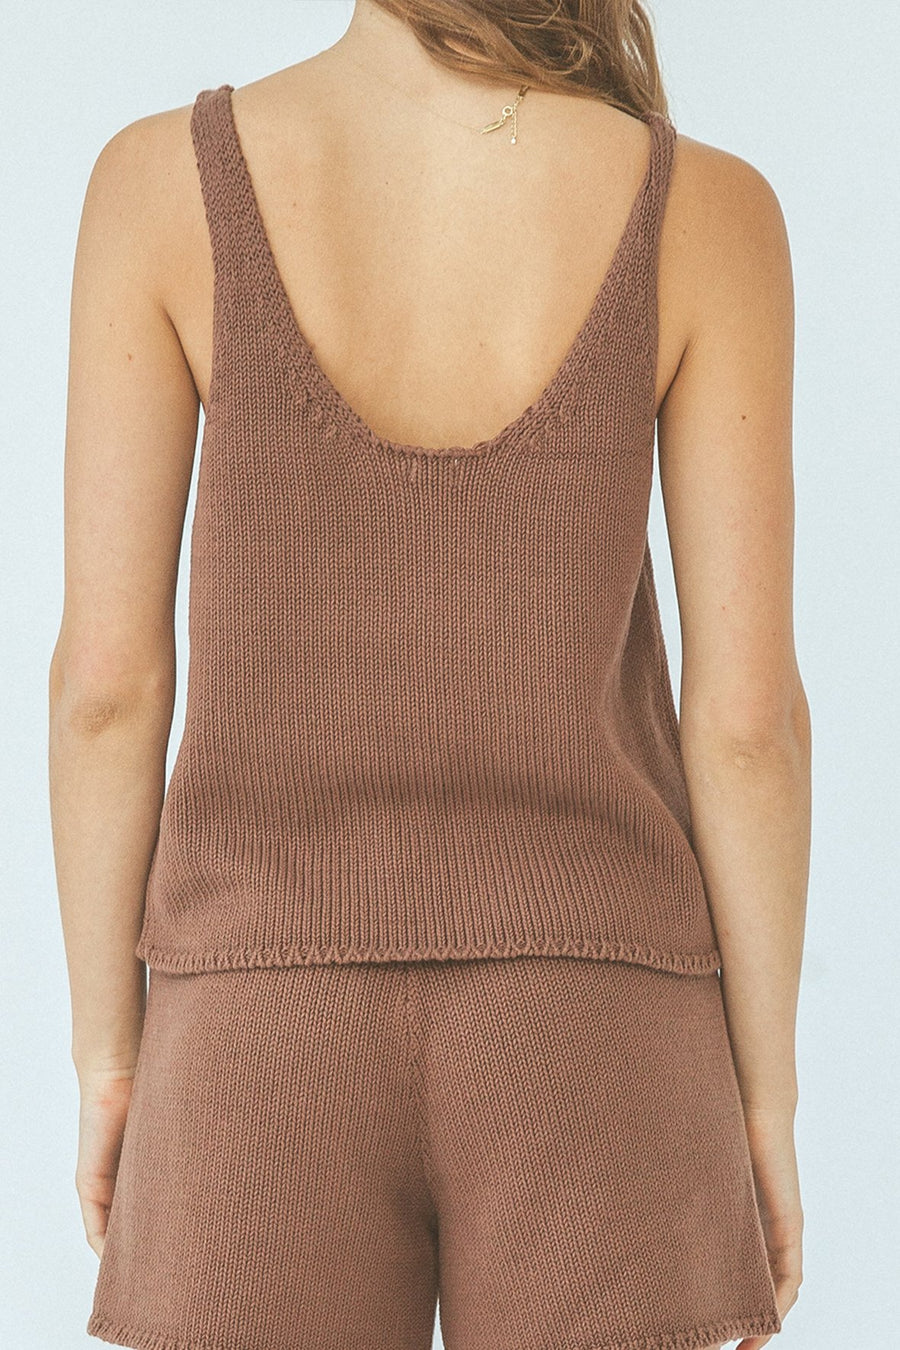 DELTA KNIT TANK CHOCOLATE